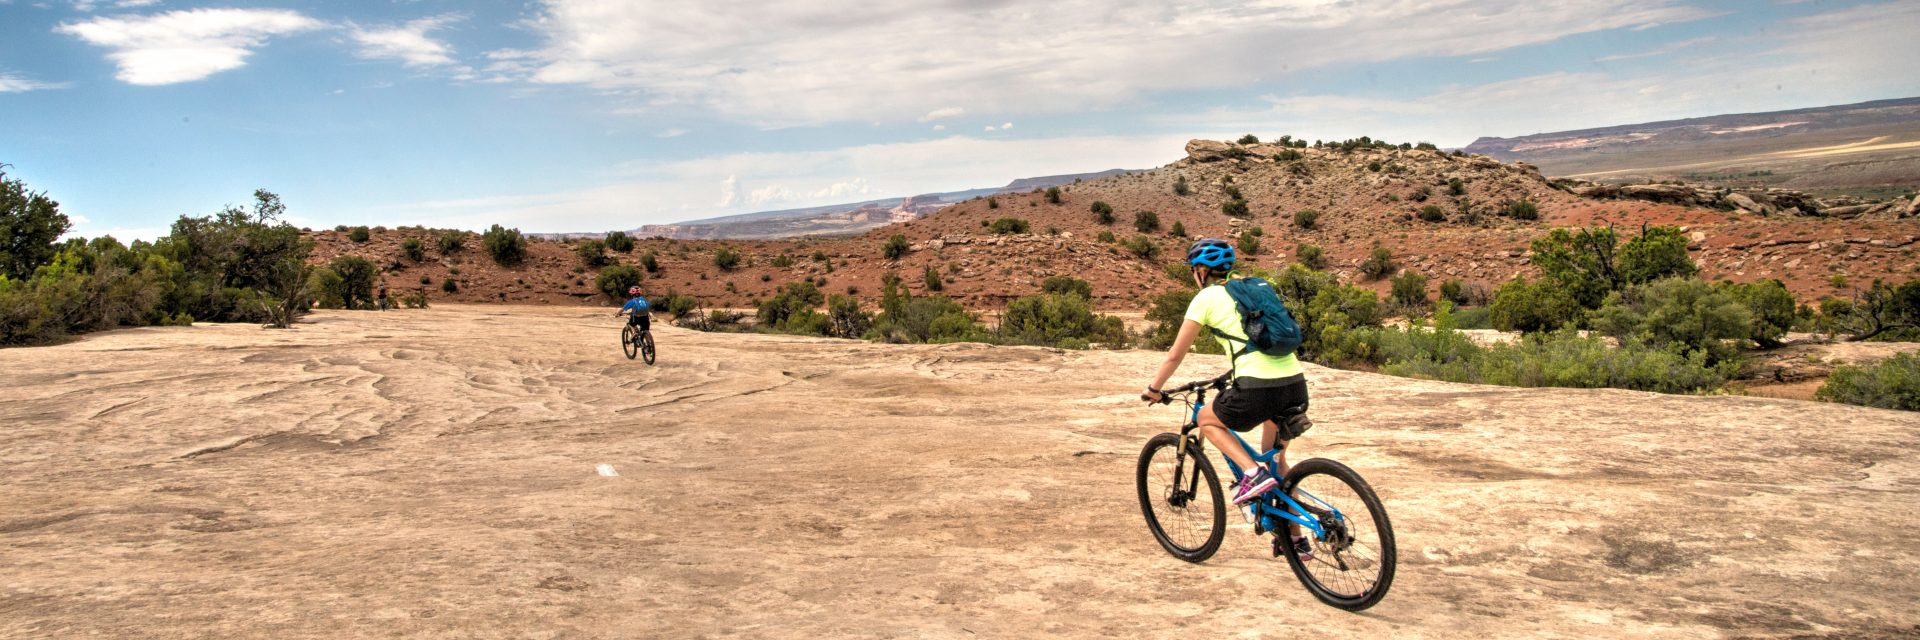 Klondike Bluff Trail includes a long section of smooth slickrock, moderate mountain bike guided tour